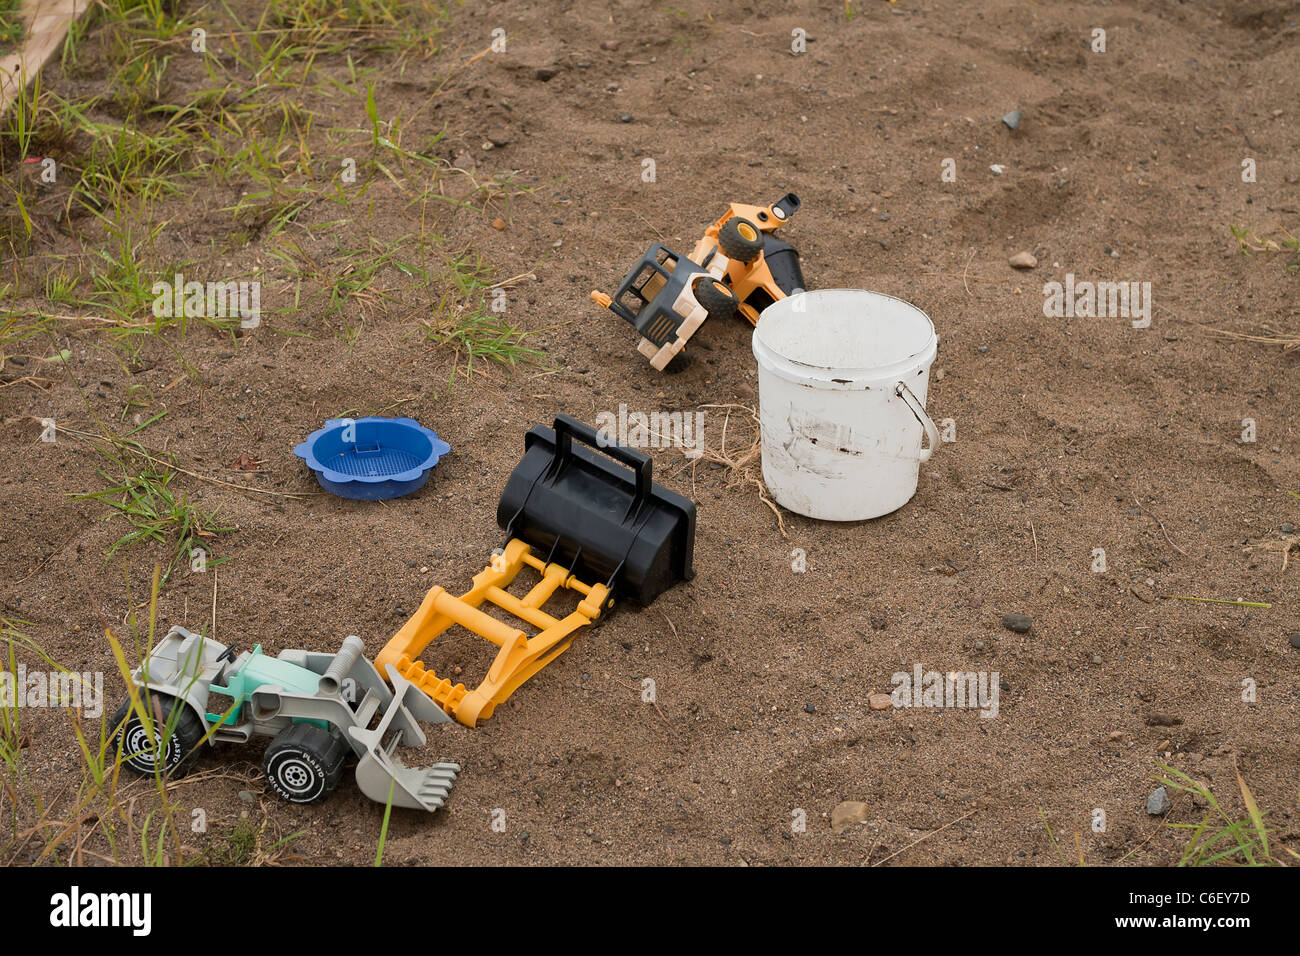 Toys spread out in a sandbox - Stock Image